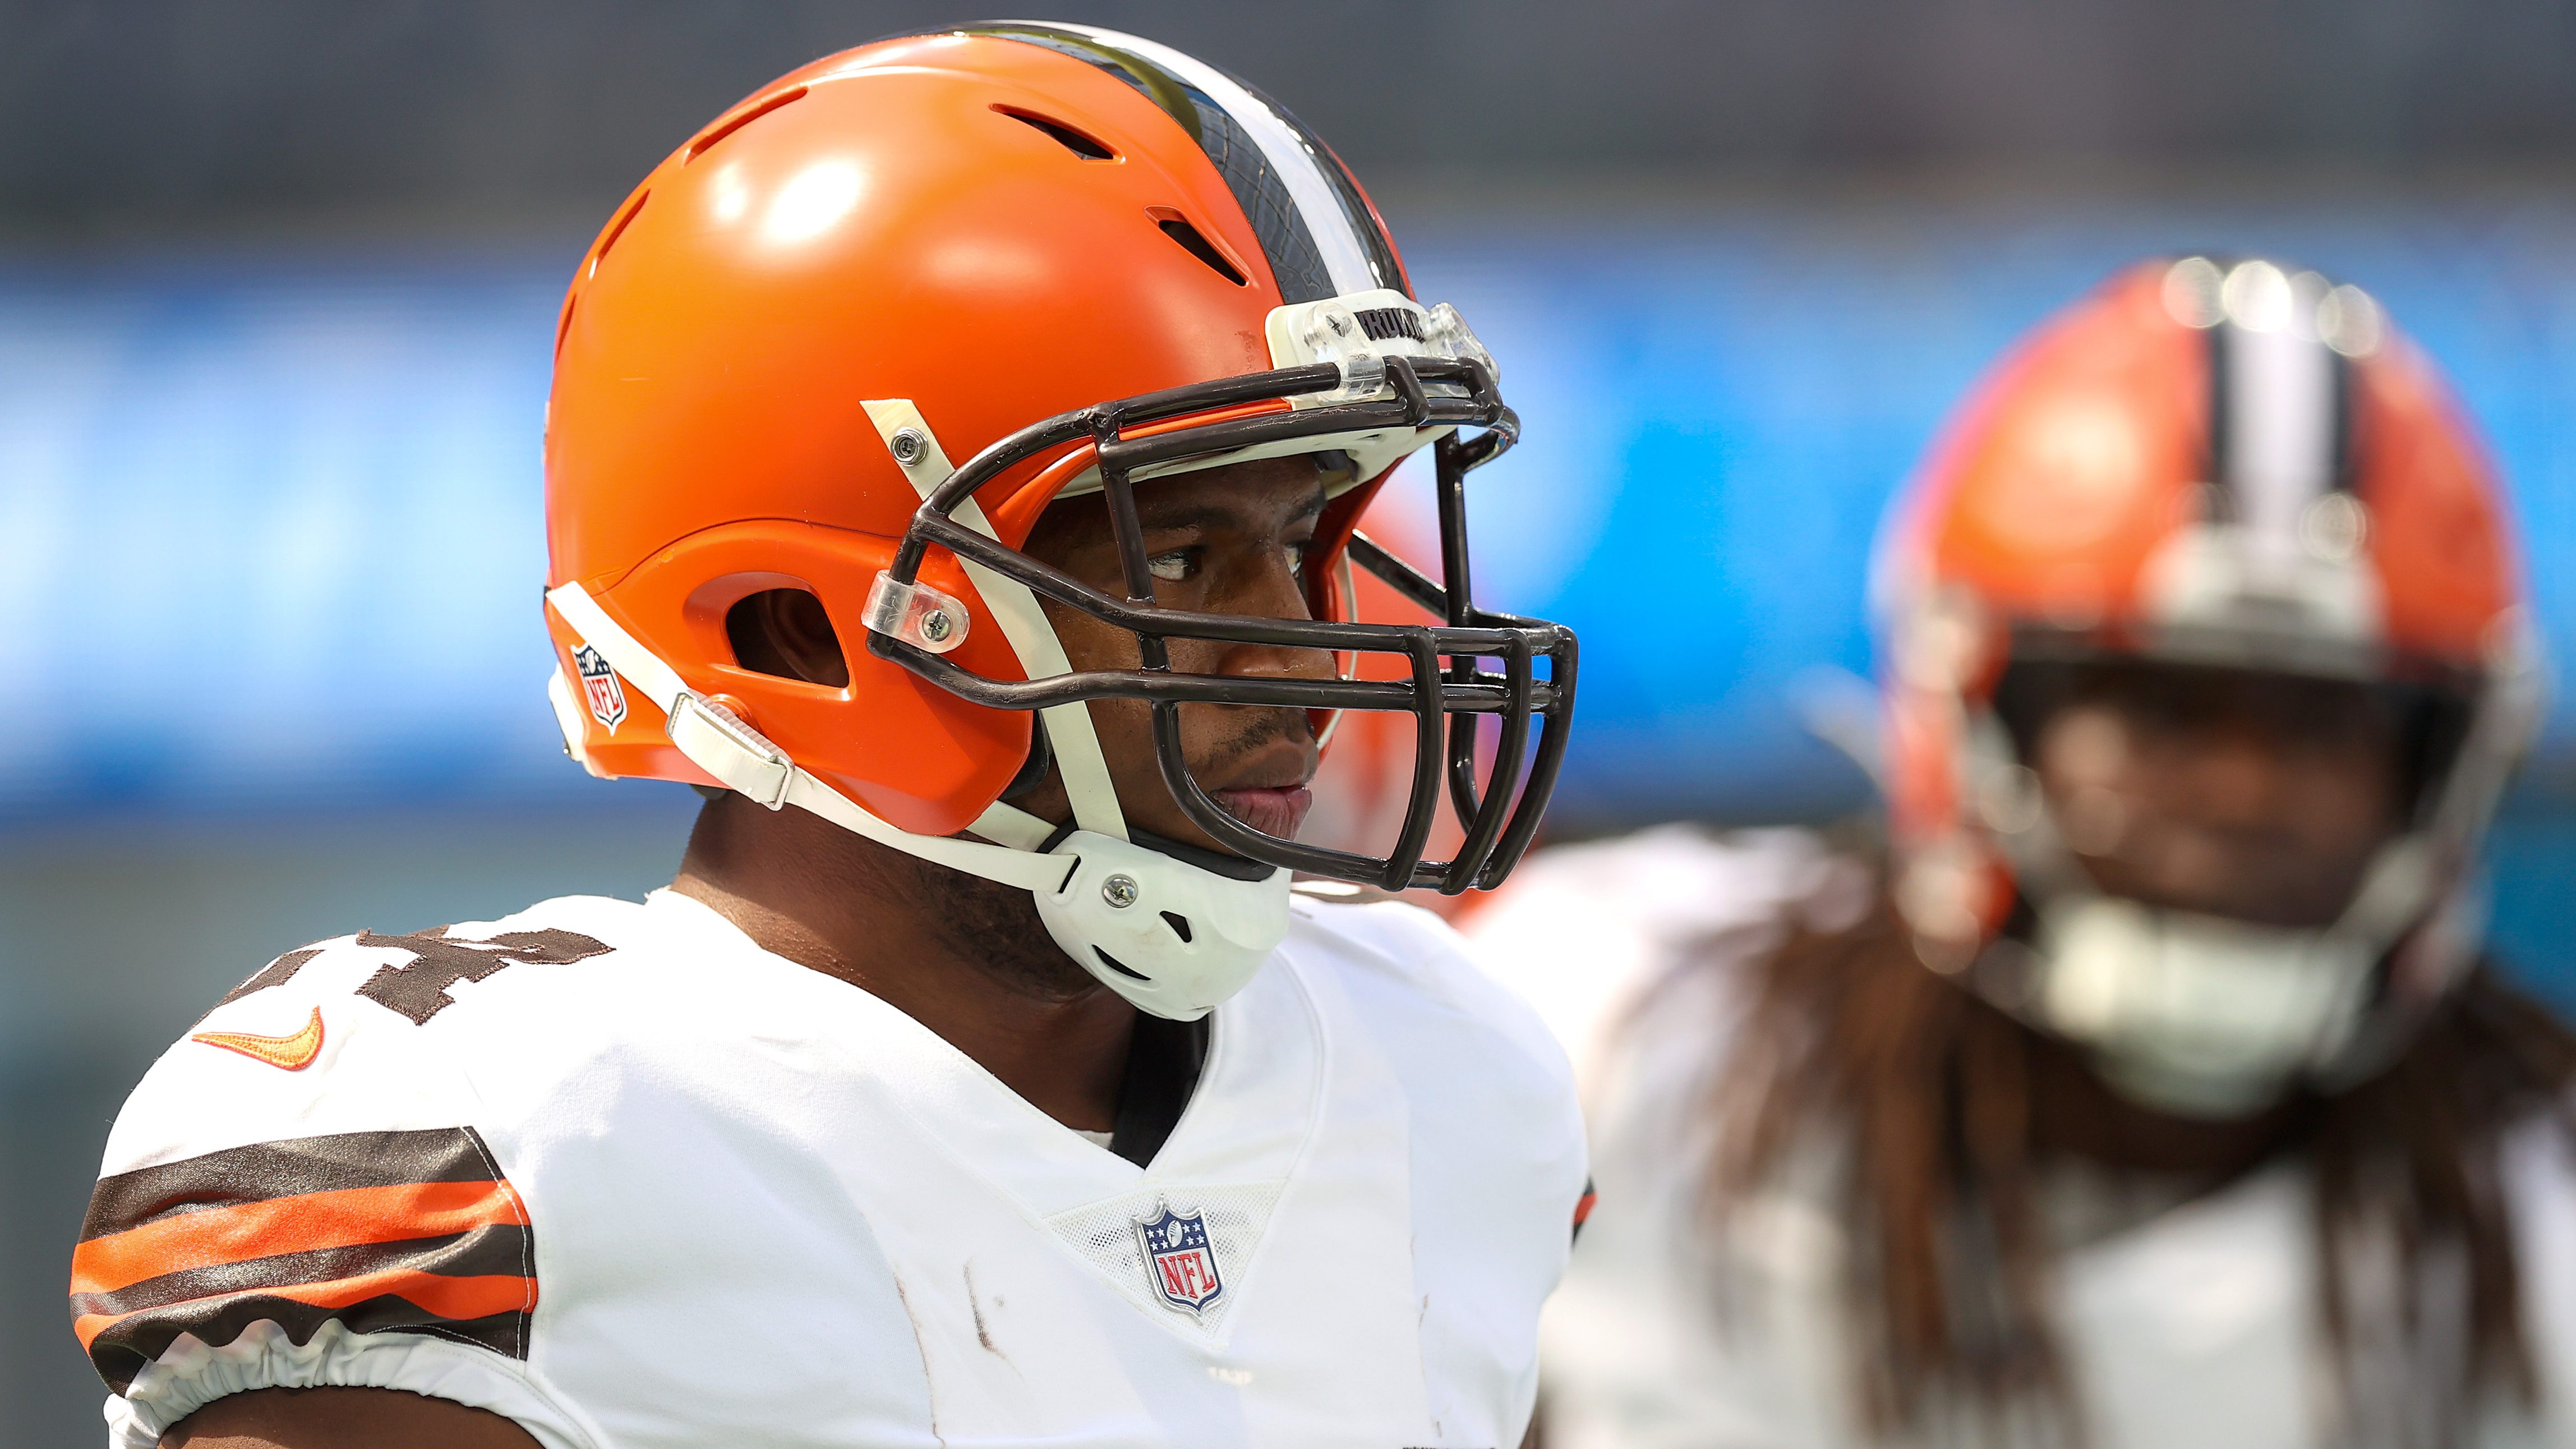 Cardinals' Week 6 Outlook Improves With Browns' Star Player Out